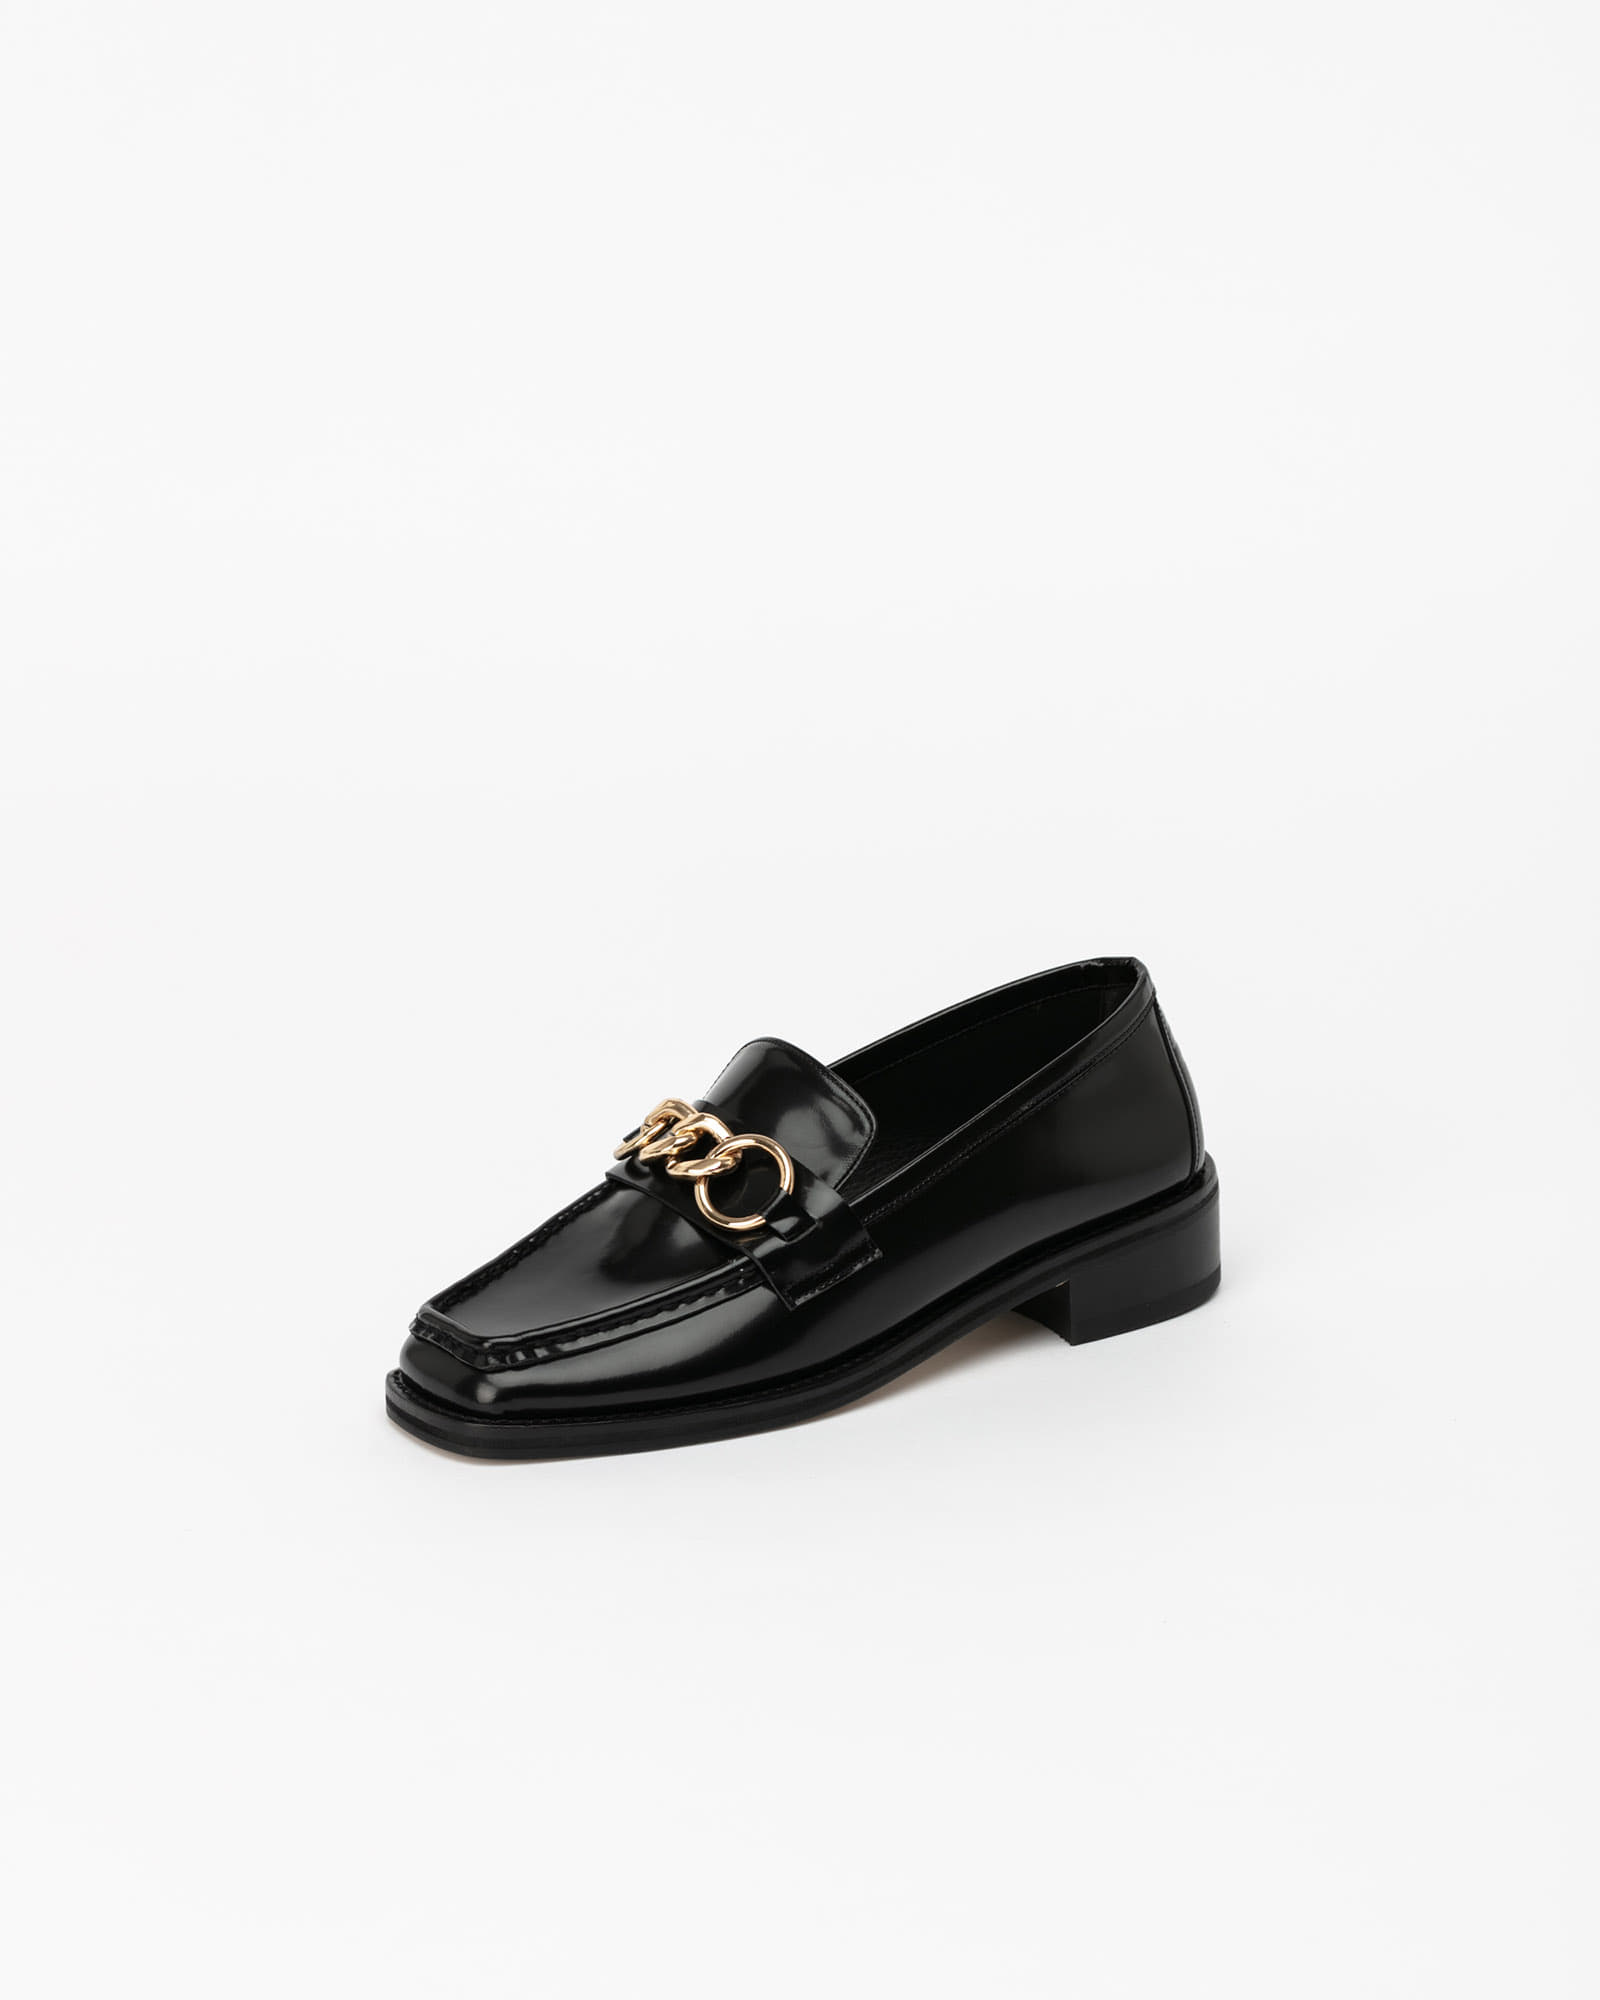 Greta Chained Soft Loafers in Black Box